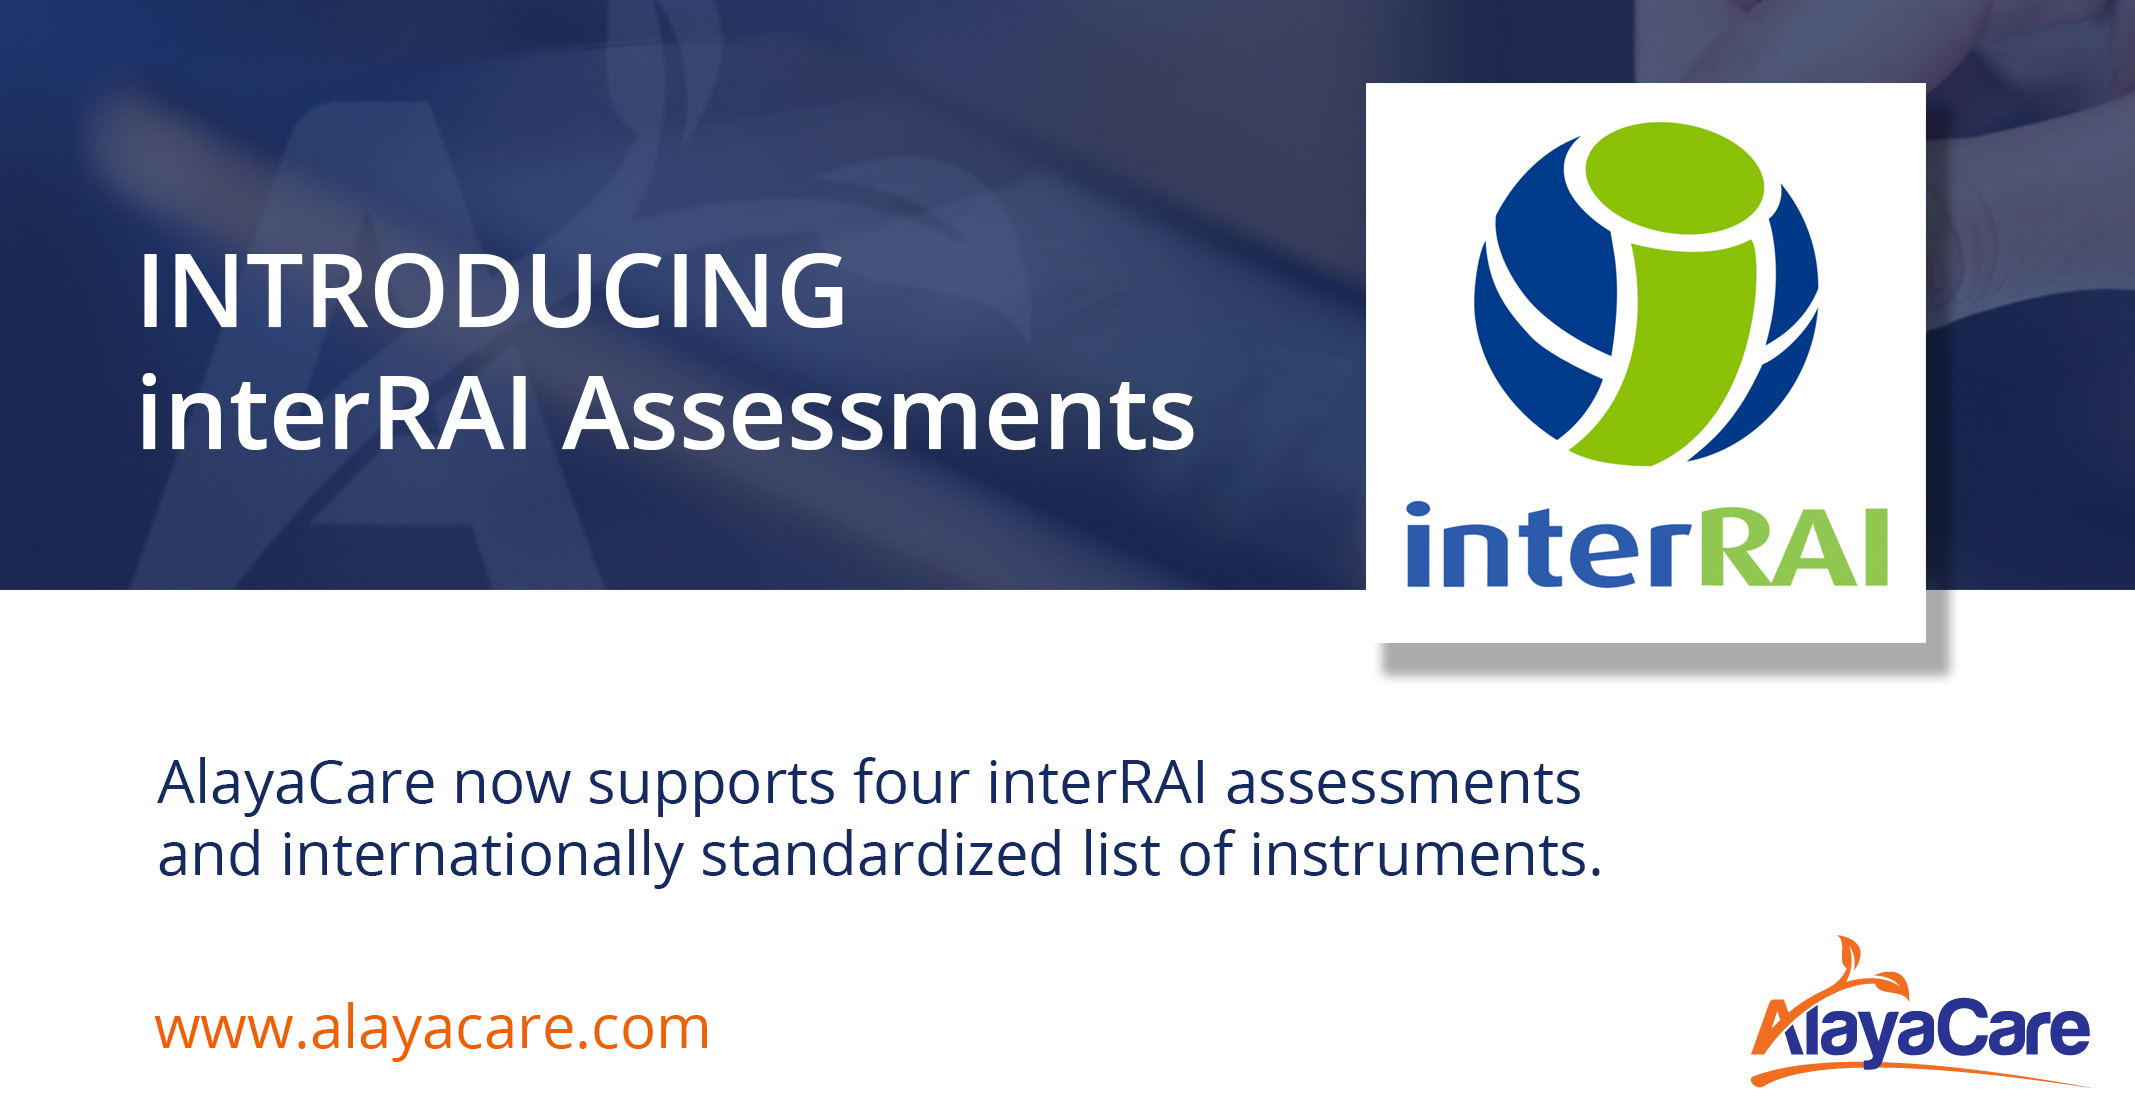 AlayaCare Launches interRAI Assessments